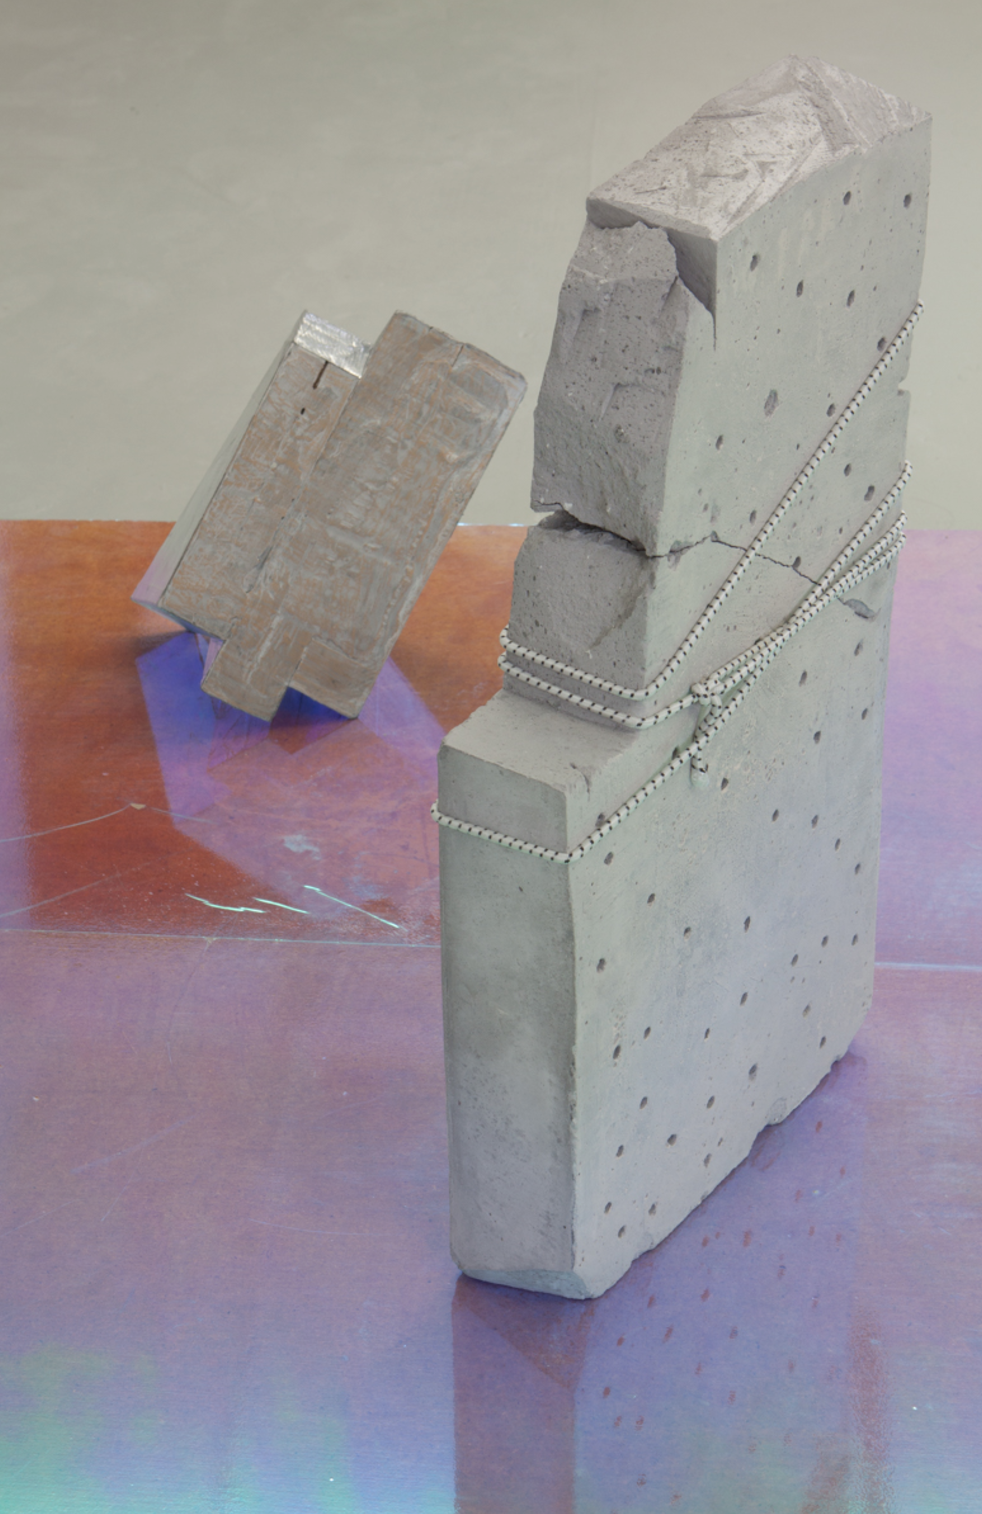 more human than human, 2016. holographic film, MDF, cement, bungee cord, duct tape, plaster, wood, crayon. 4x4' platform